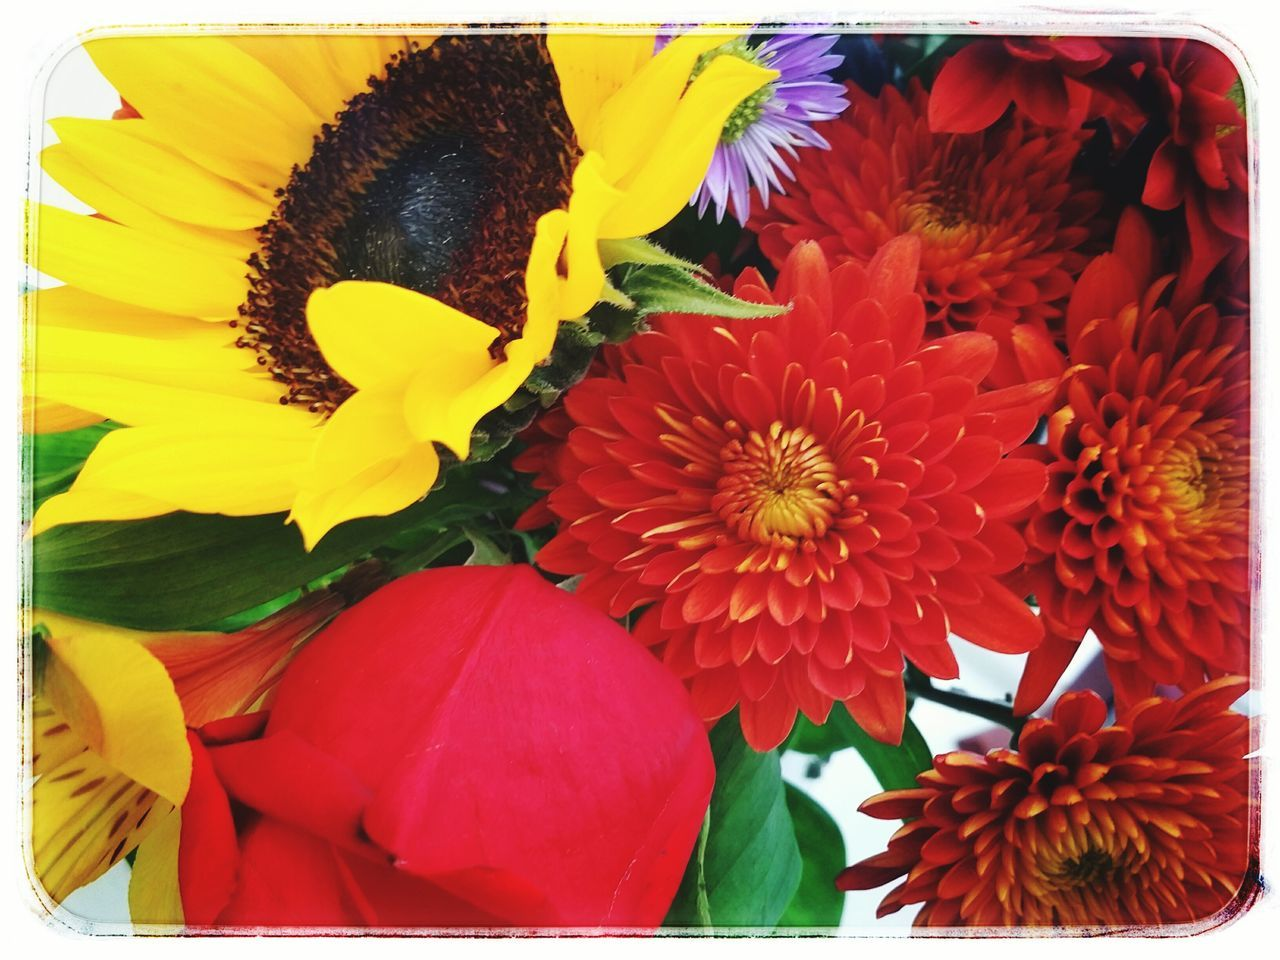 Flowers, natural light, colors, Indoor Photography Vibrant Sunflower